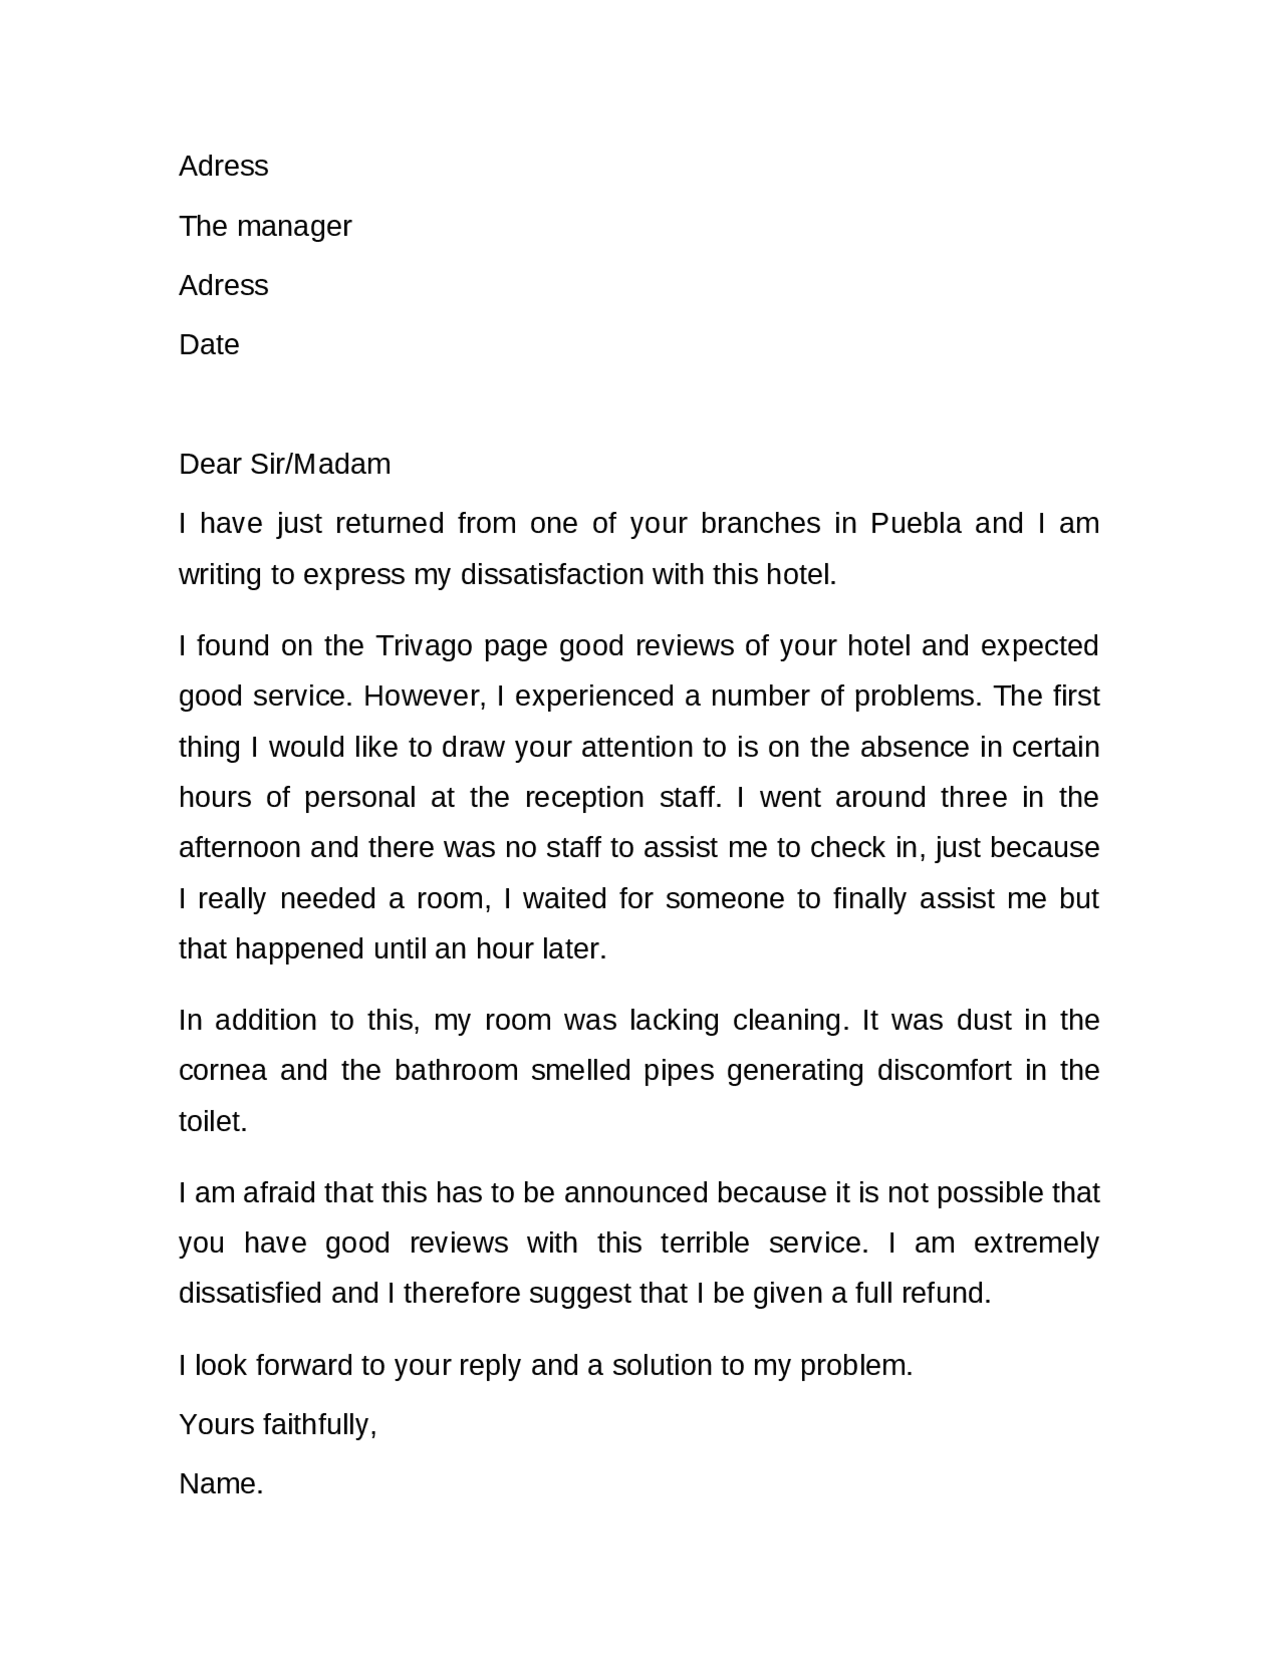 A Complaint Letter Of Hotel Service